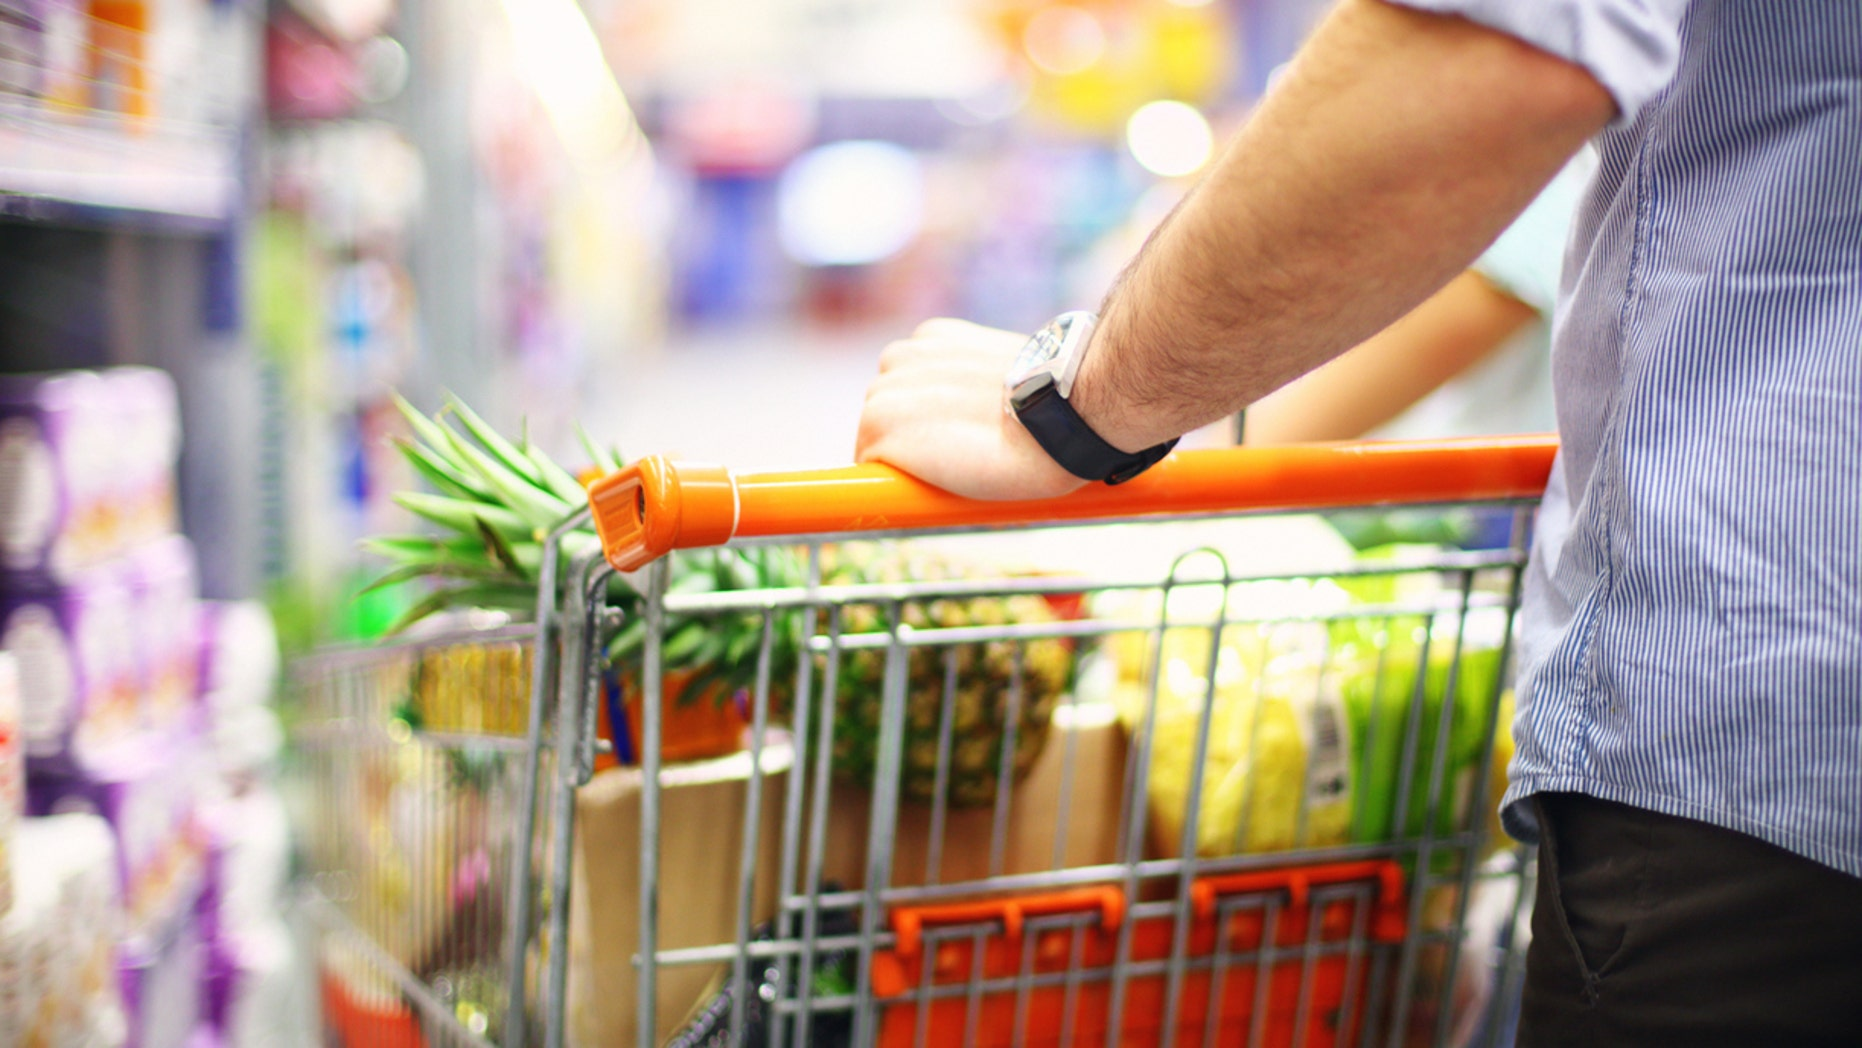 Rear view of unrecognizable mid-aged man in supermarket.He's pushing shopping car almost fully packed with groceries.Shelves with products stretch deep in background out of focus. He's wearing light blue striped shirt with rolled back sleeves,brown pants and a wristwatch.